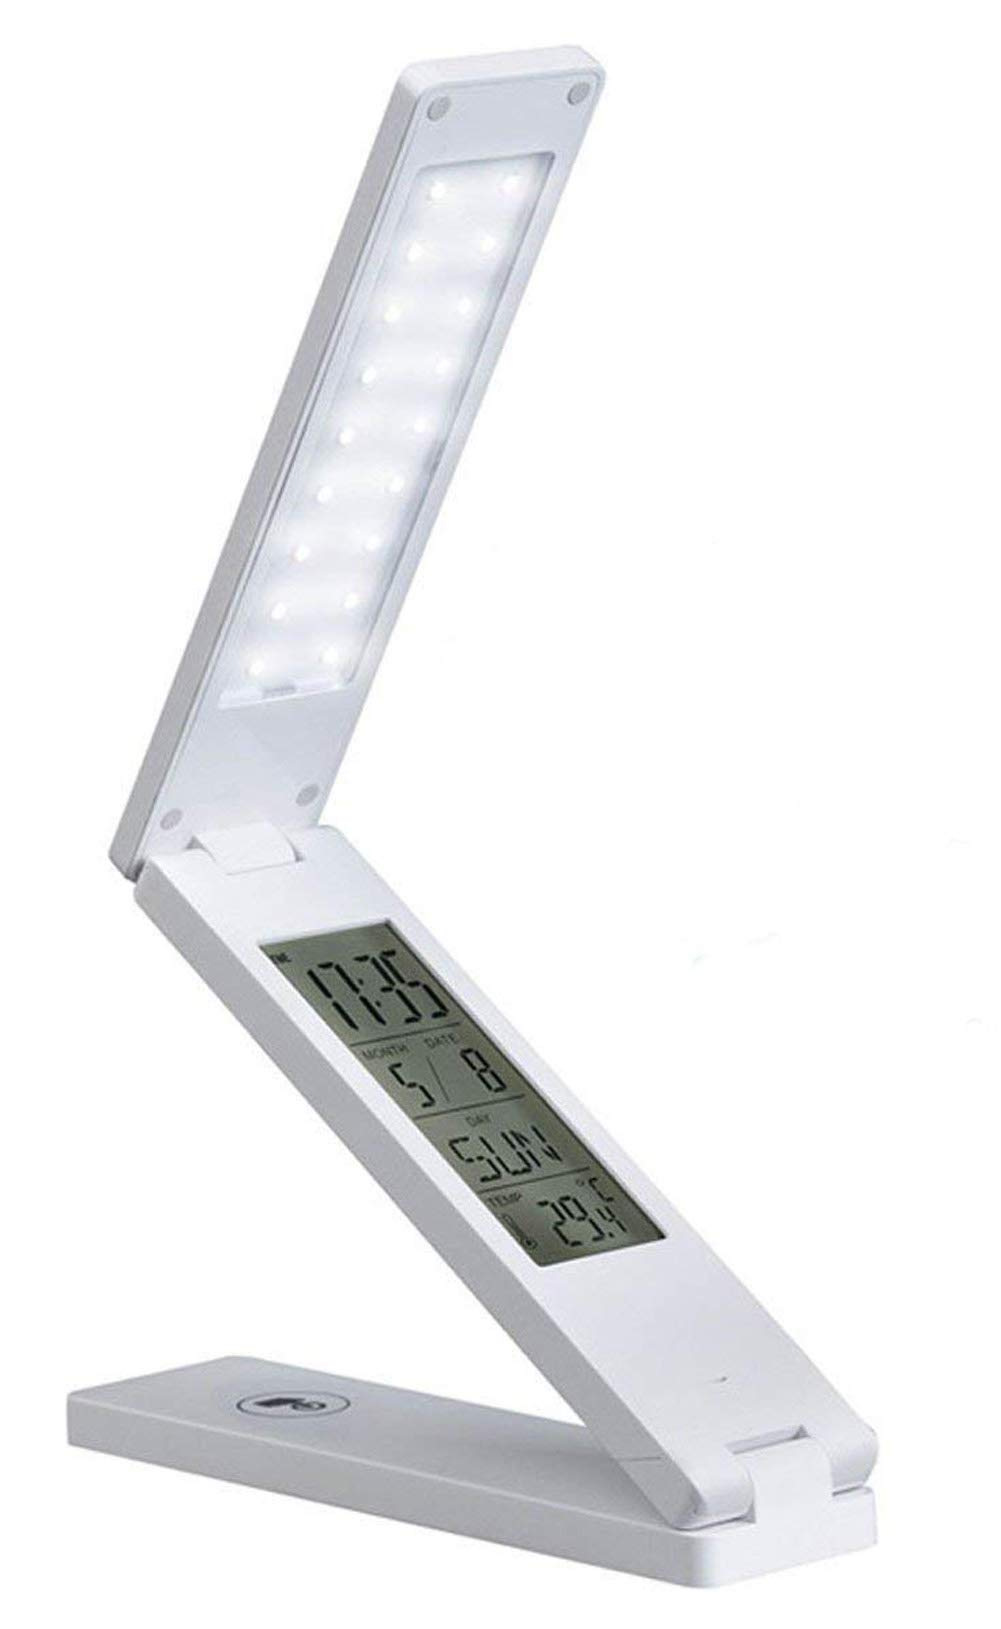 Led Desk Lamp With USB Charging Port Built-in LCD Monitor/ Calendar 2018/Lamp Touch Control (Date Setting Alarm Birthday Reminder Timer Temperature Adjustable brightness -Portable)/Night Light